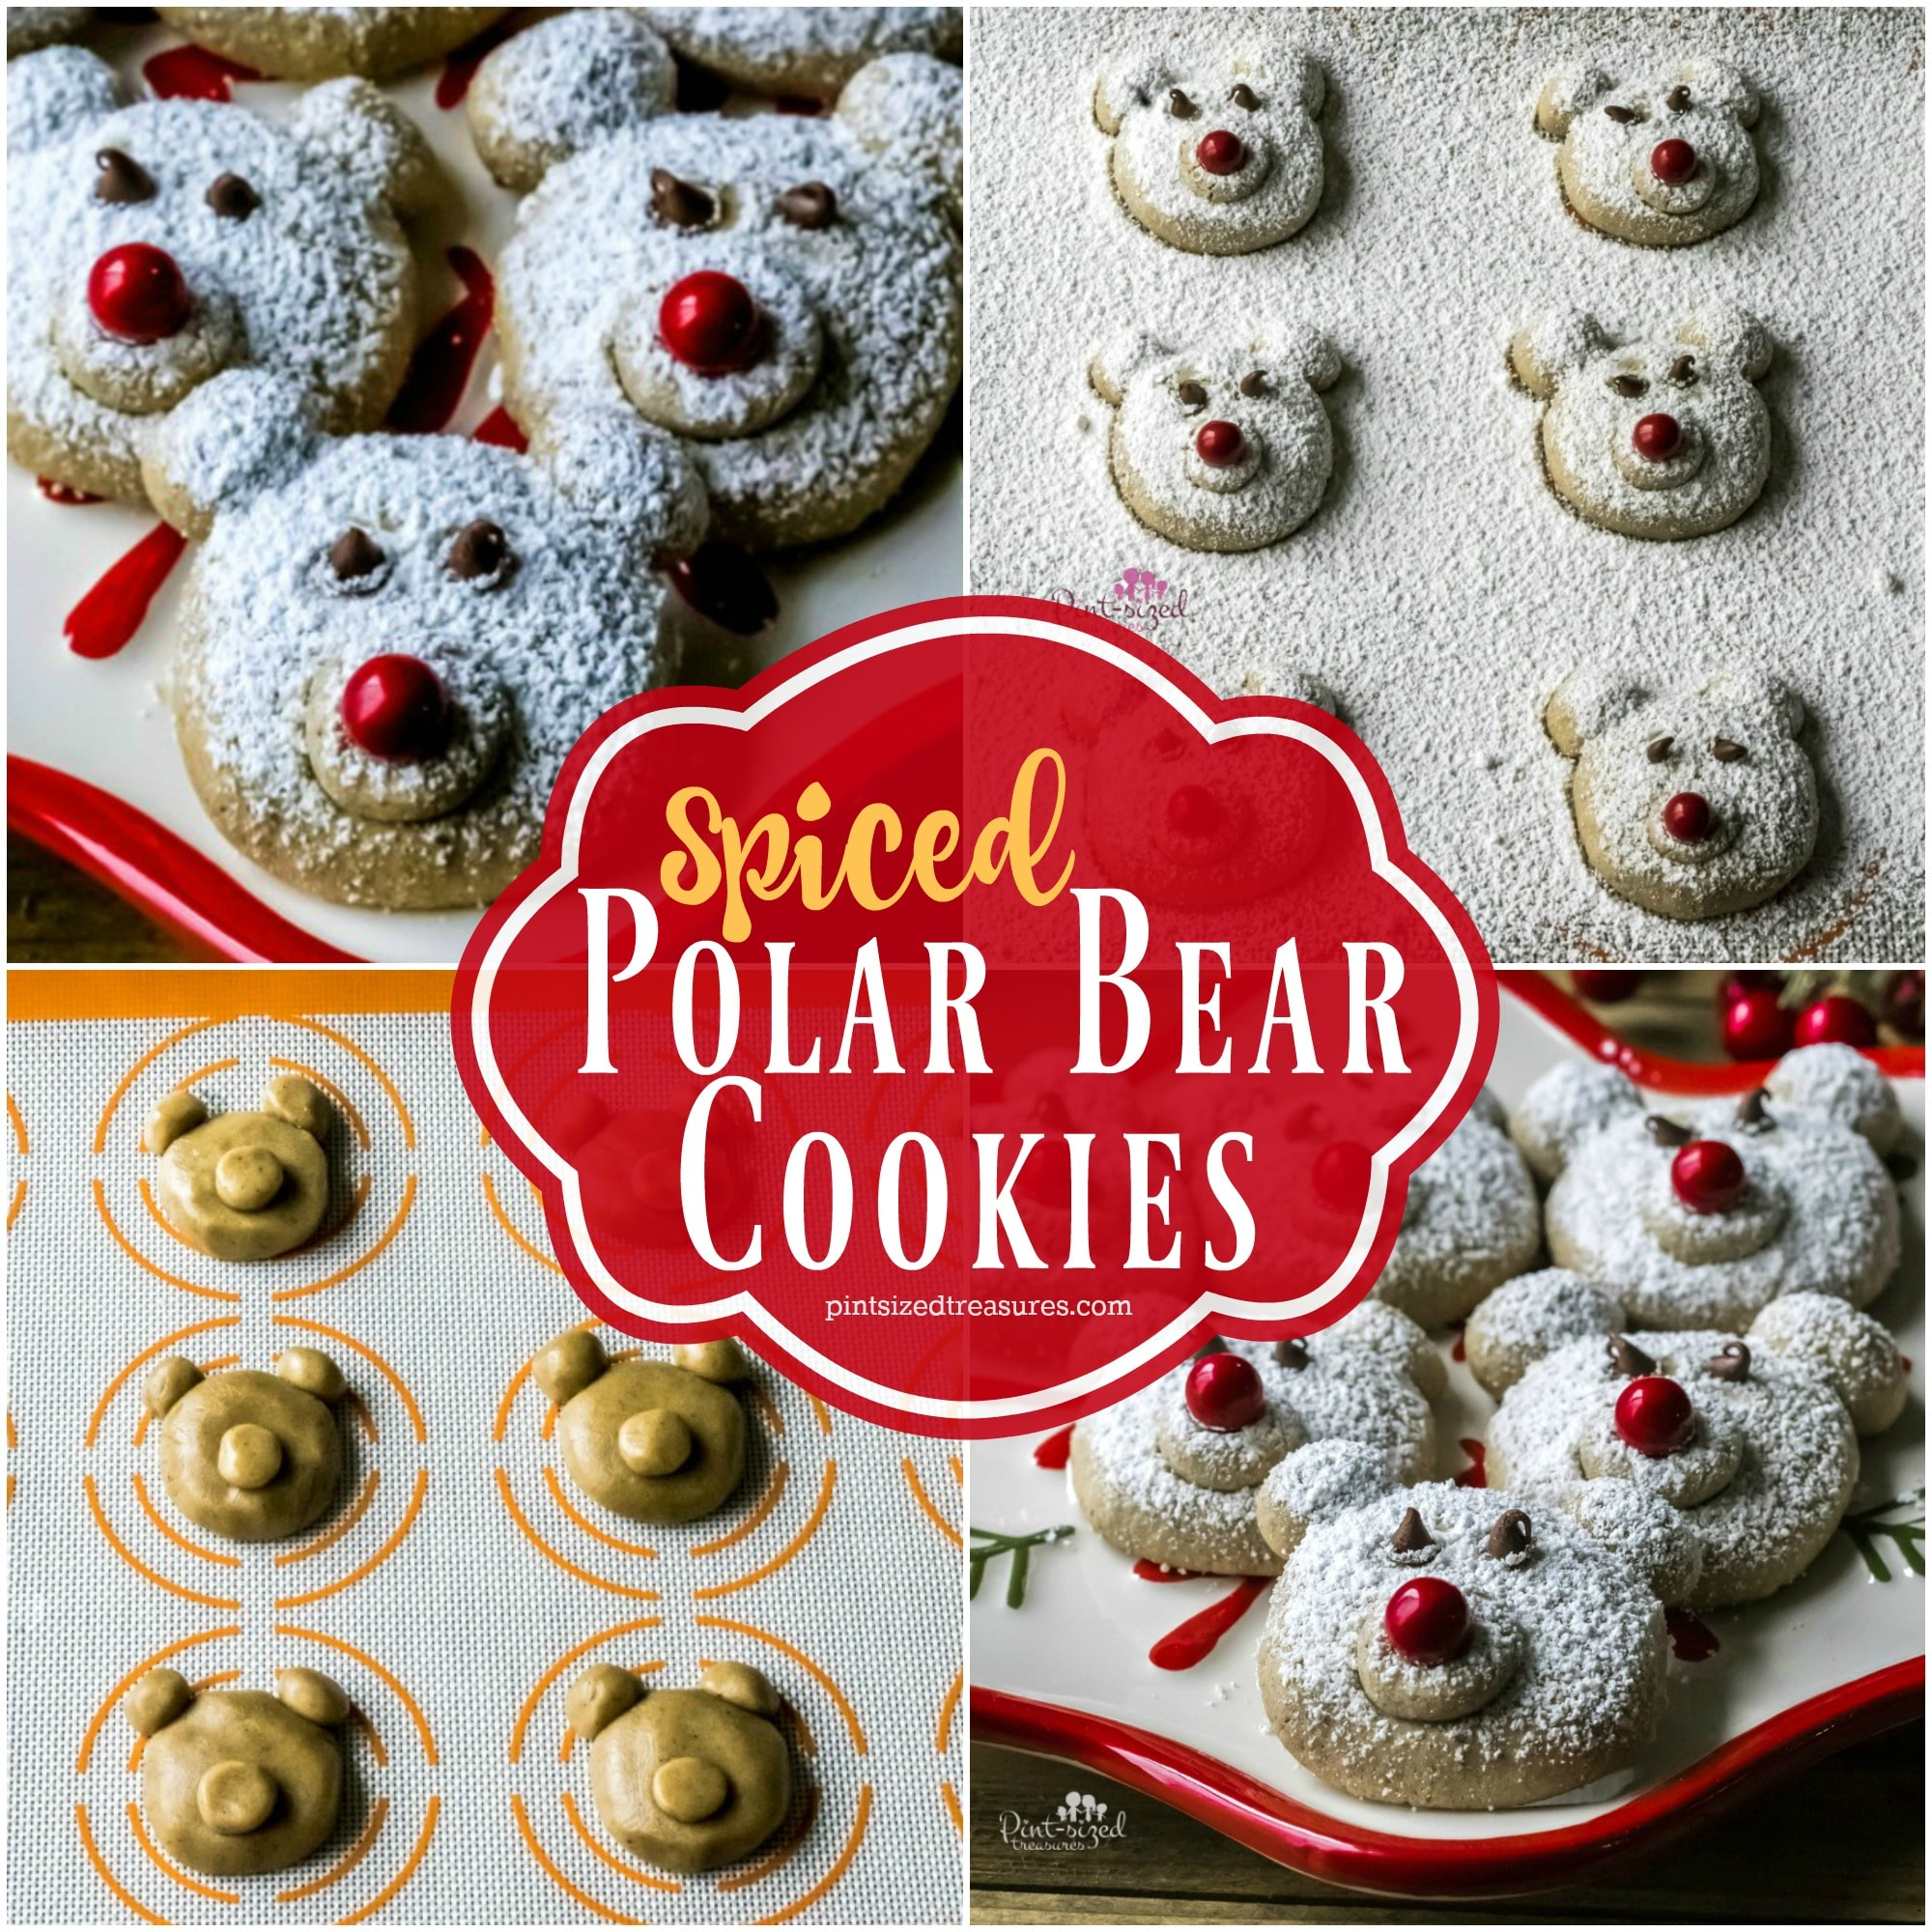 spiced polar bear cookies recipe